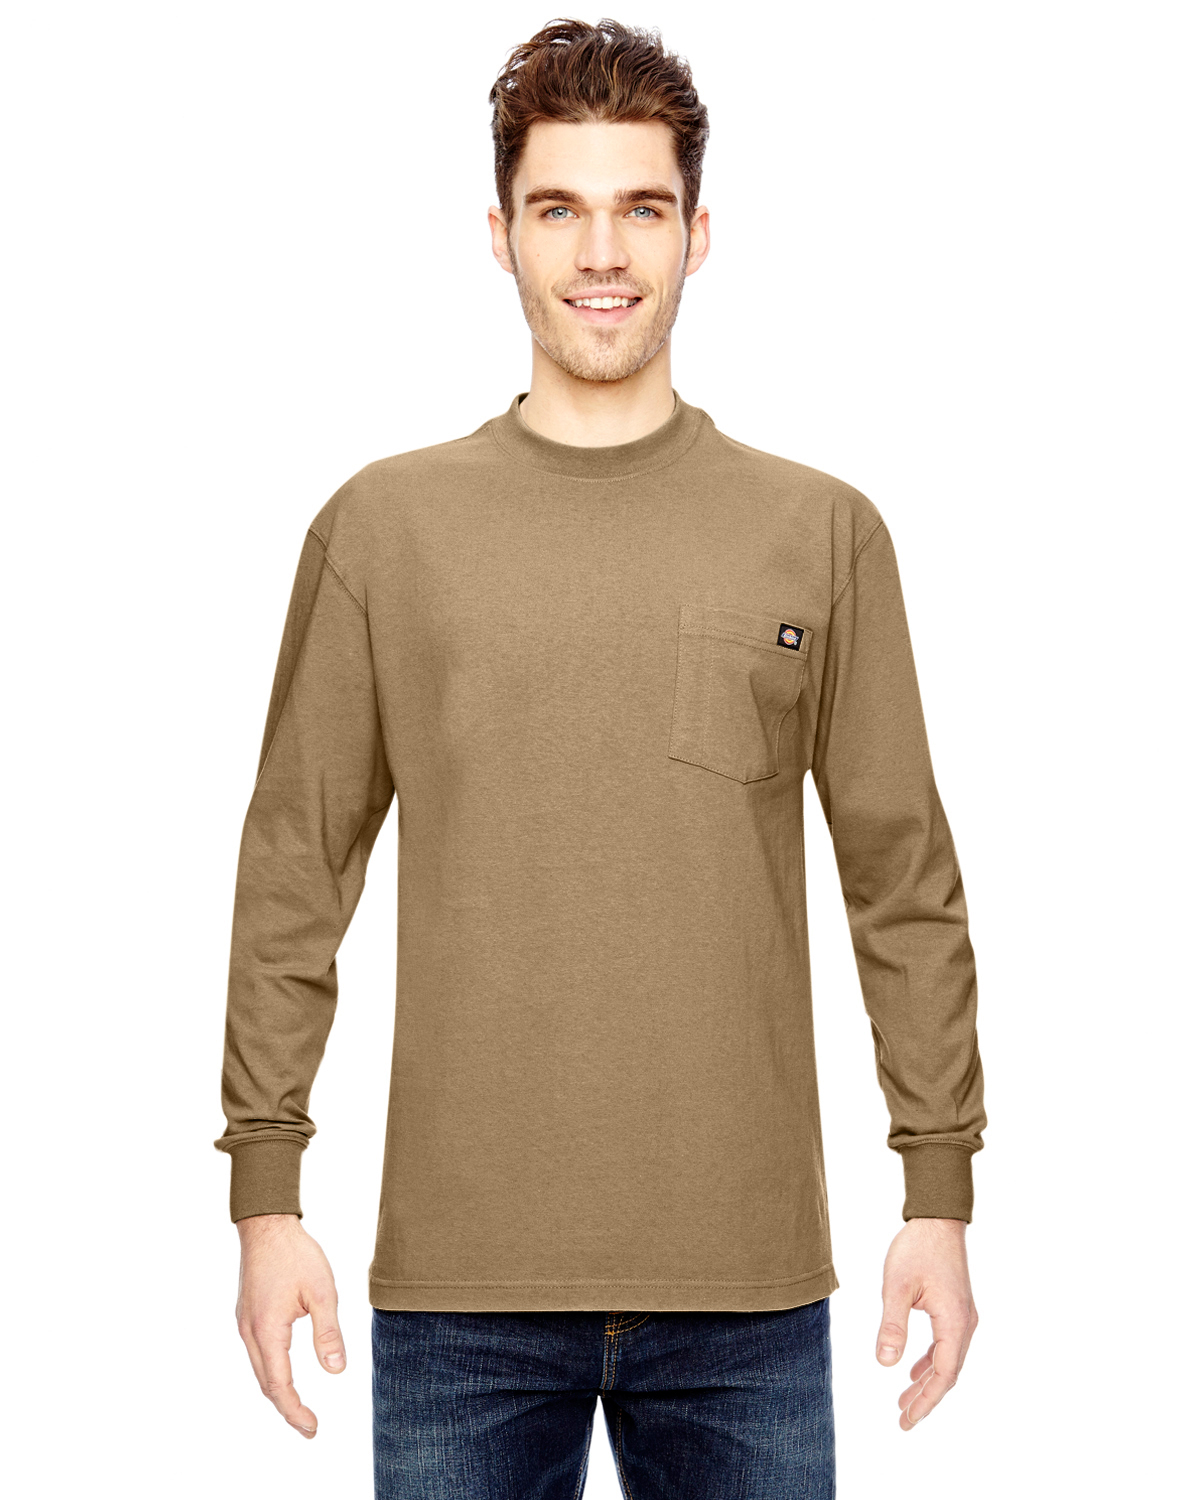 Dickies 6.75 Oz. Heavyweight Work Long-Sleeve Tall Work T-Shirt